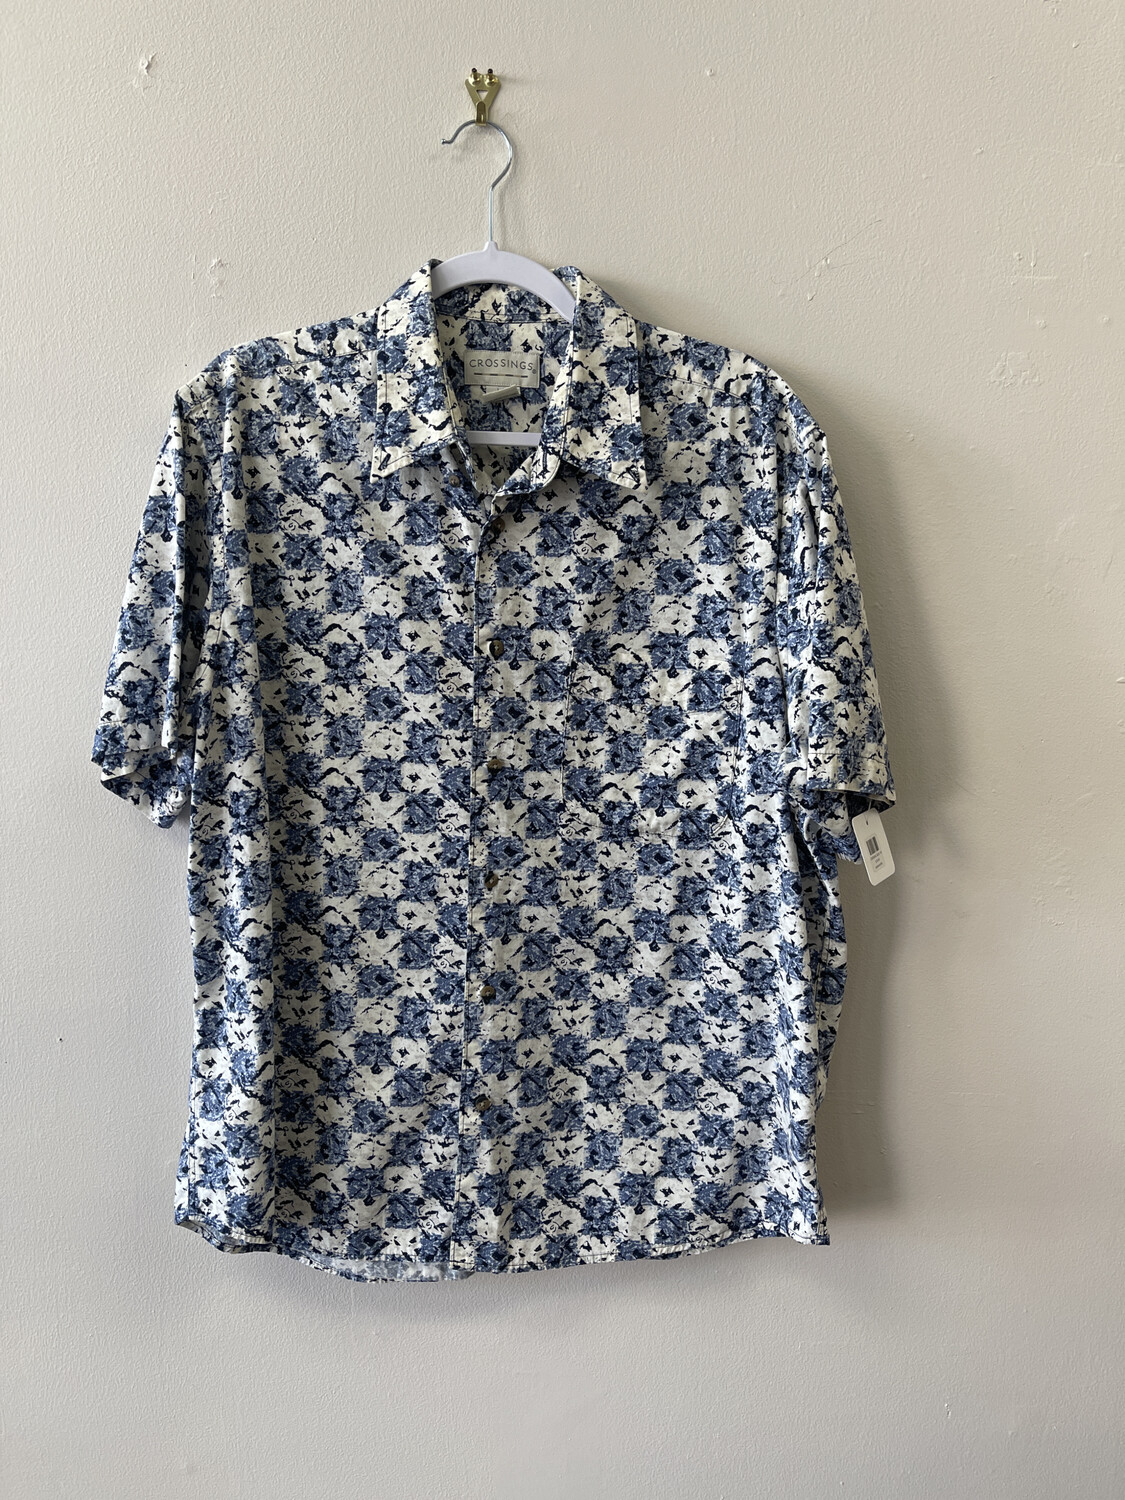 Crossing Short-Sleeved Shirt, Size  L